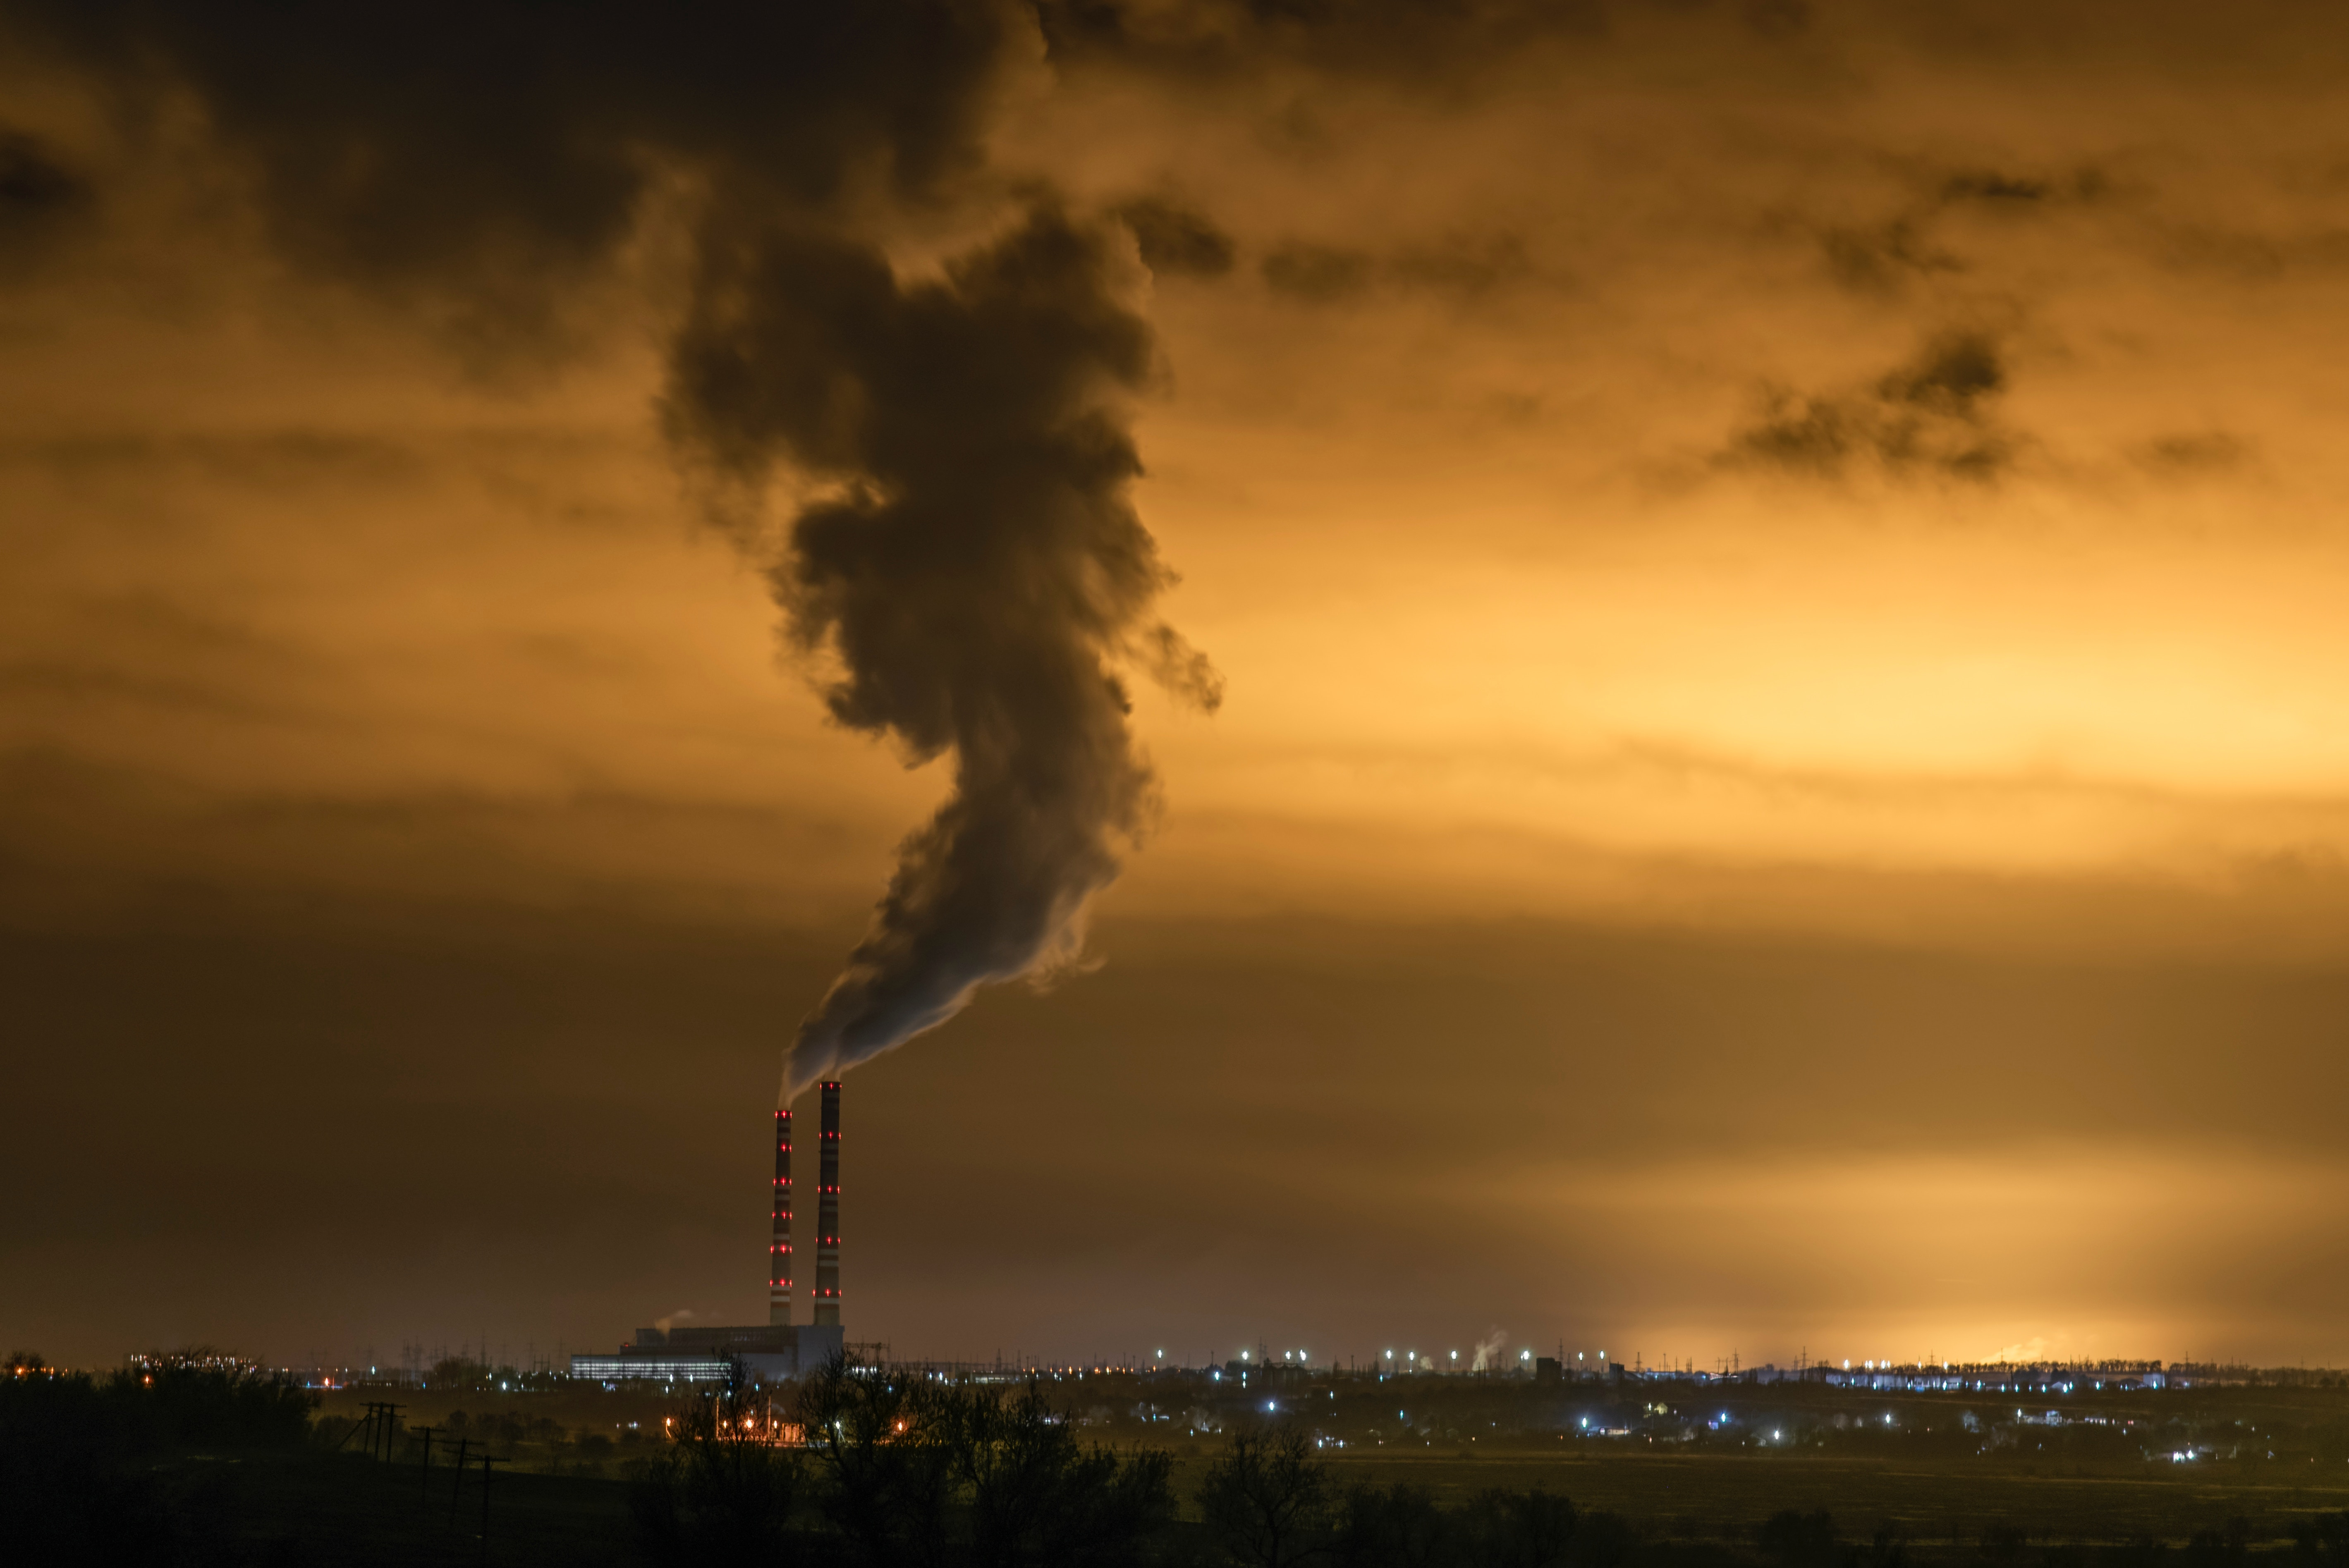 Protect public health, tell the EPA to follow science on air quality — AddUp.org